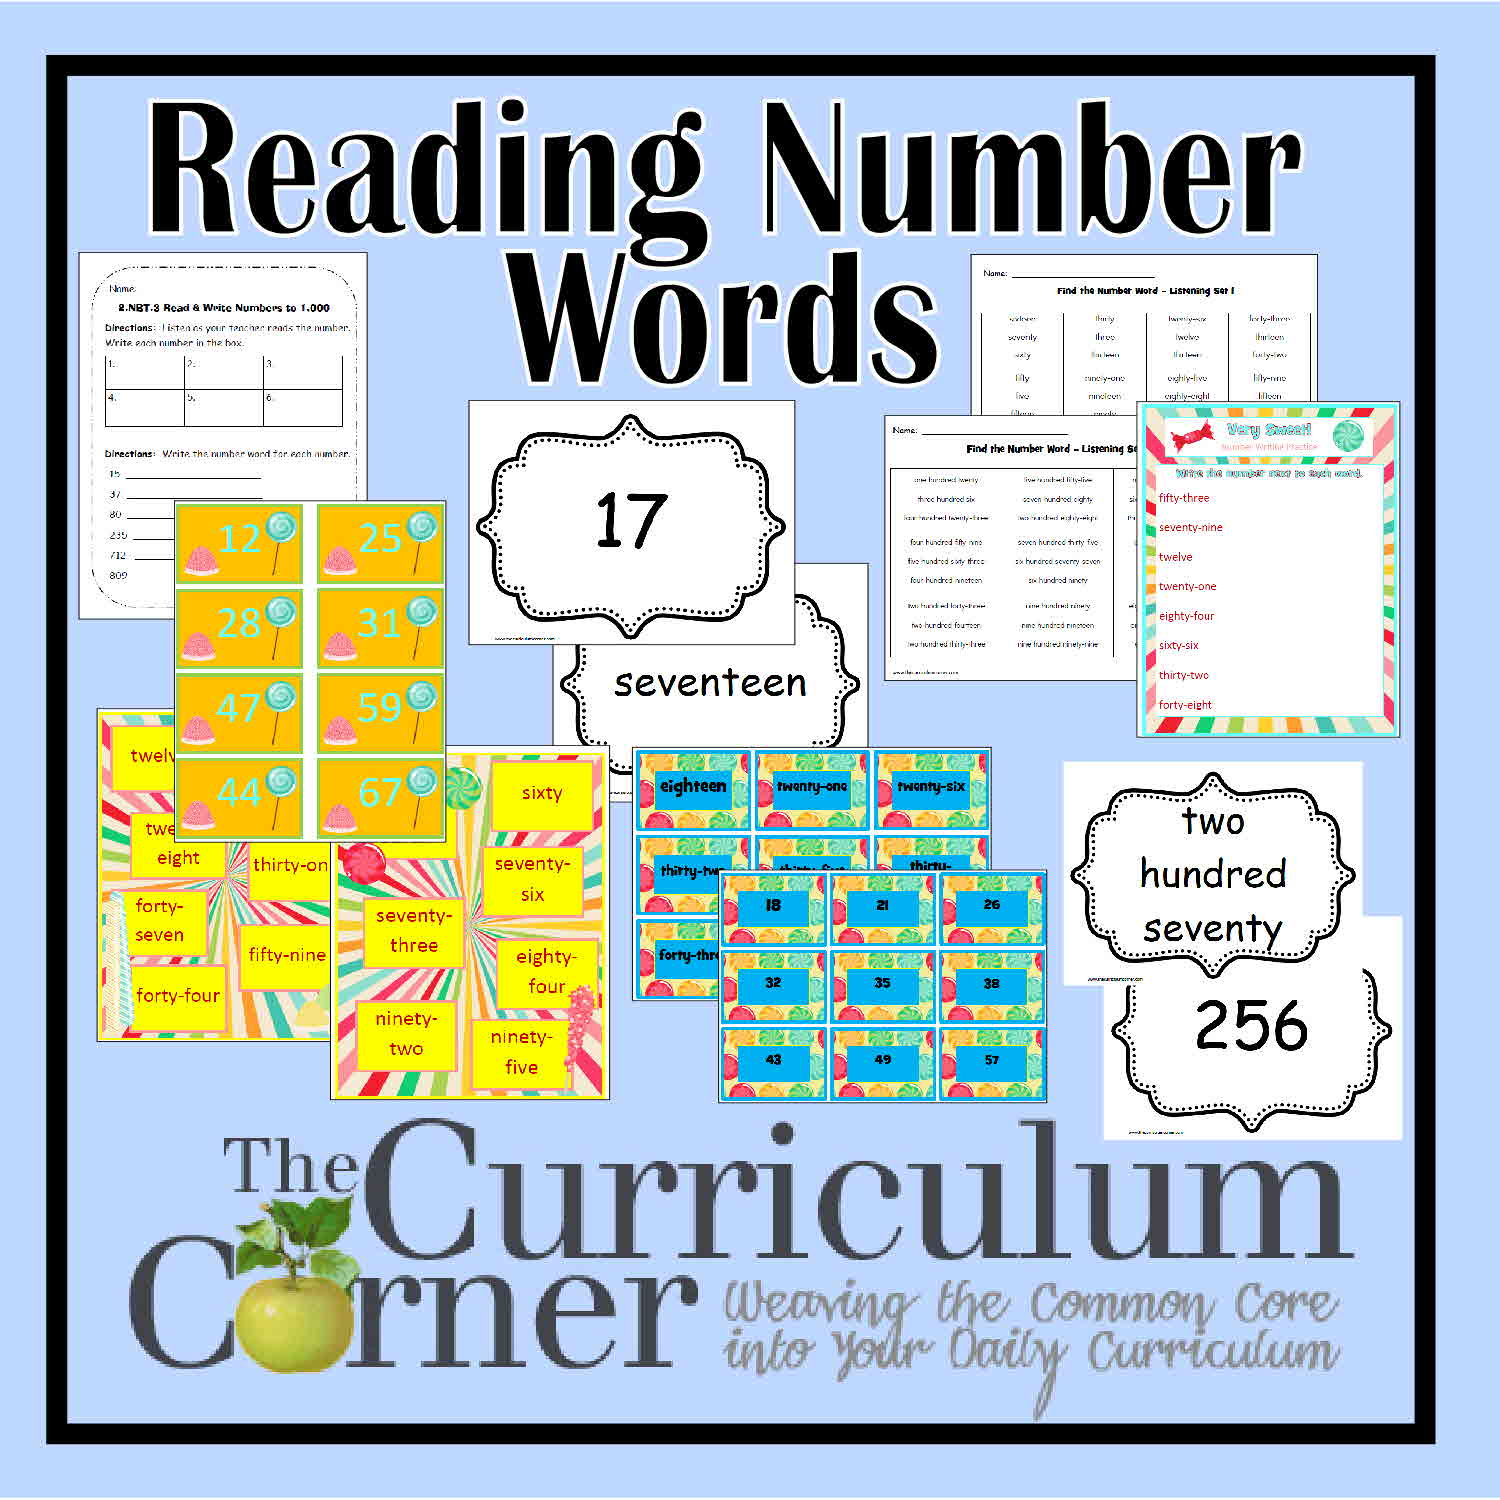 Worksheet Reading Help For 2nd Graders reading number words the curriculum corner 123 working on to 1000 can be difficult for some second graders help us address this we have created a collection of activitie